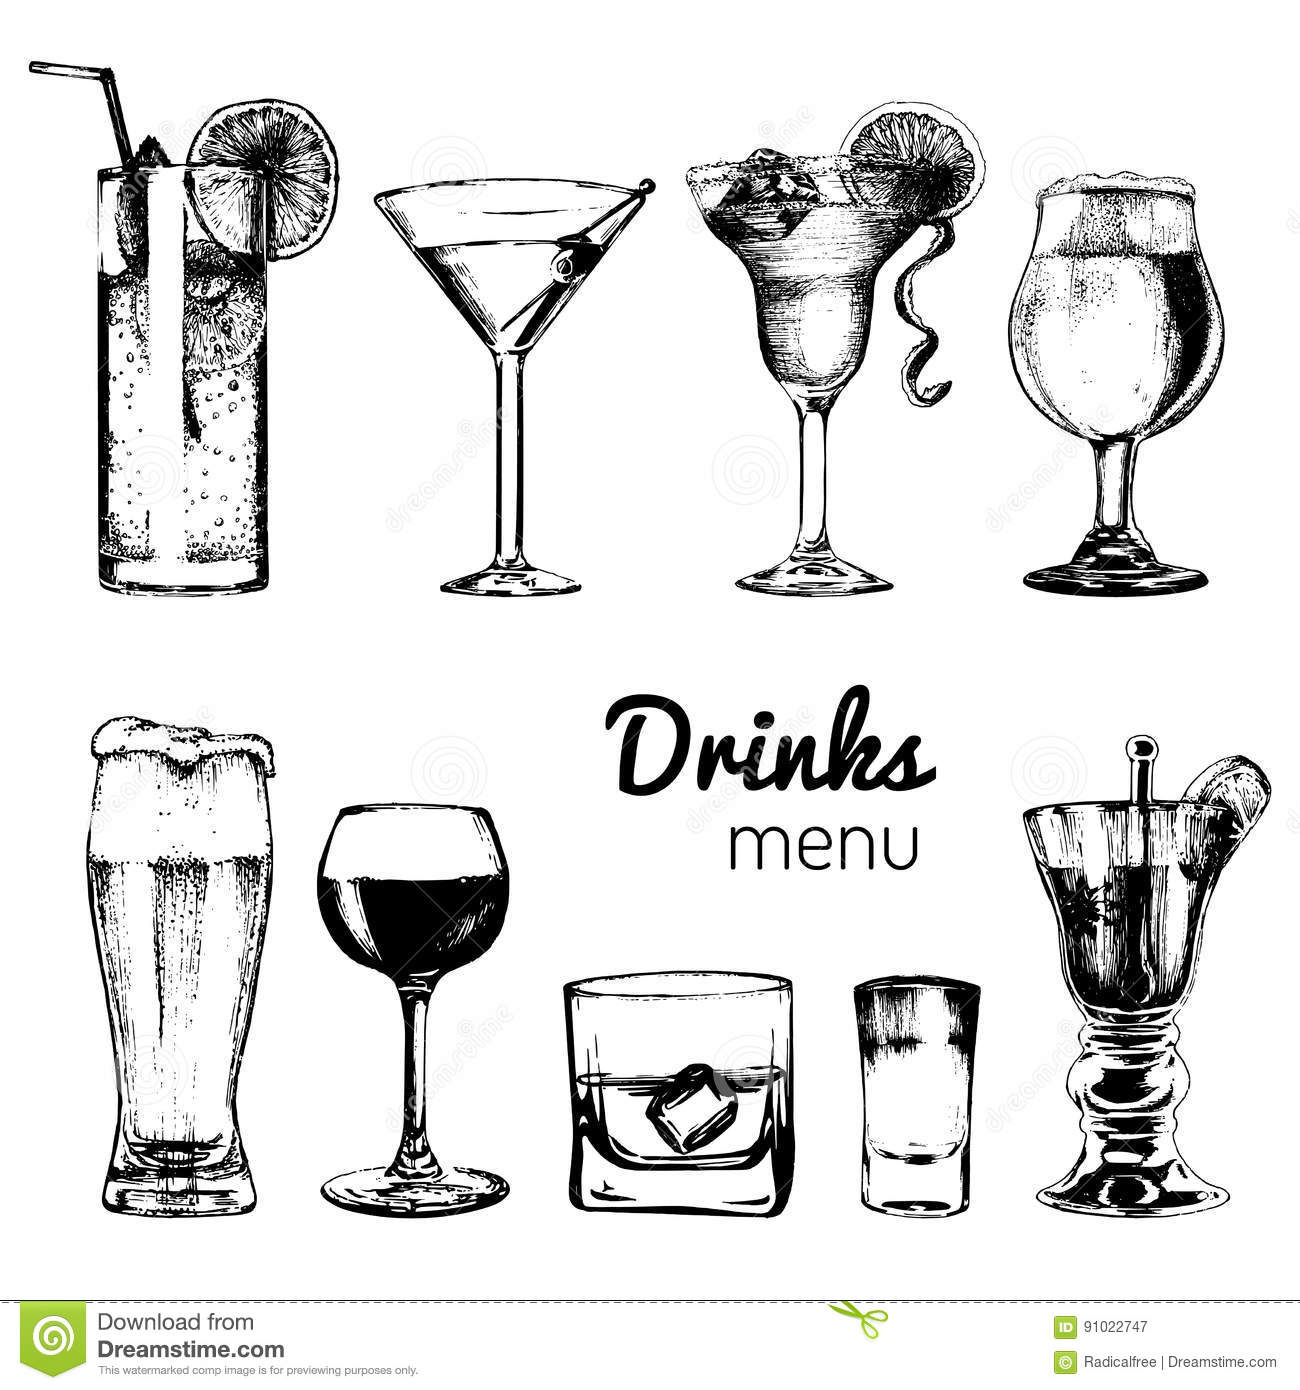 Cocktails and Drink Glasses